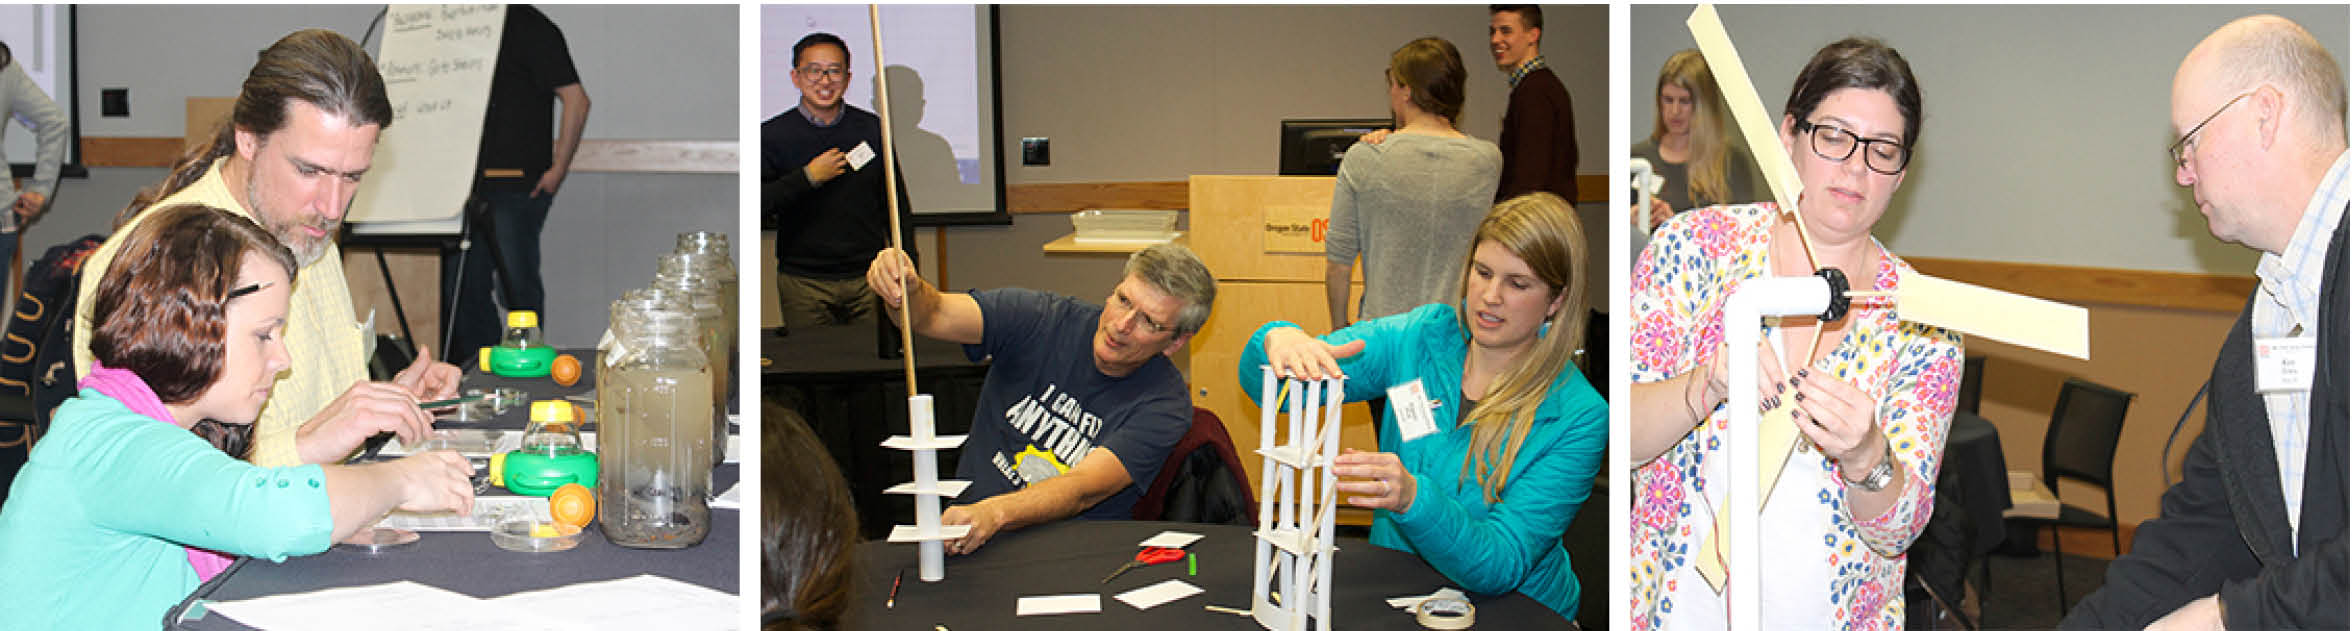 three images of teachers at a hands-on training learning about ponds, building structures and wind turbines